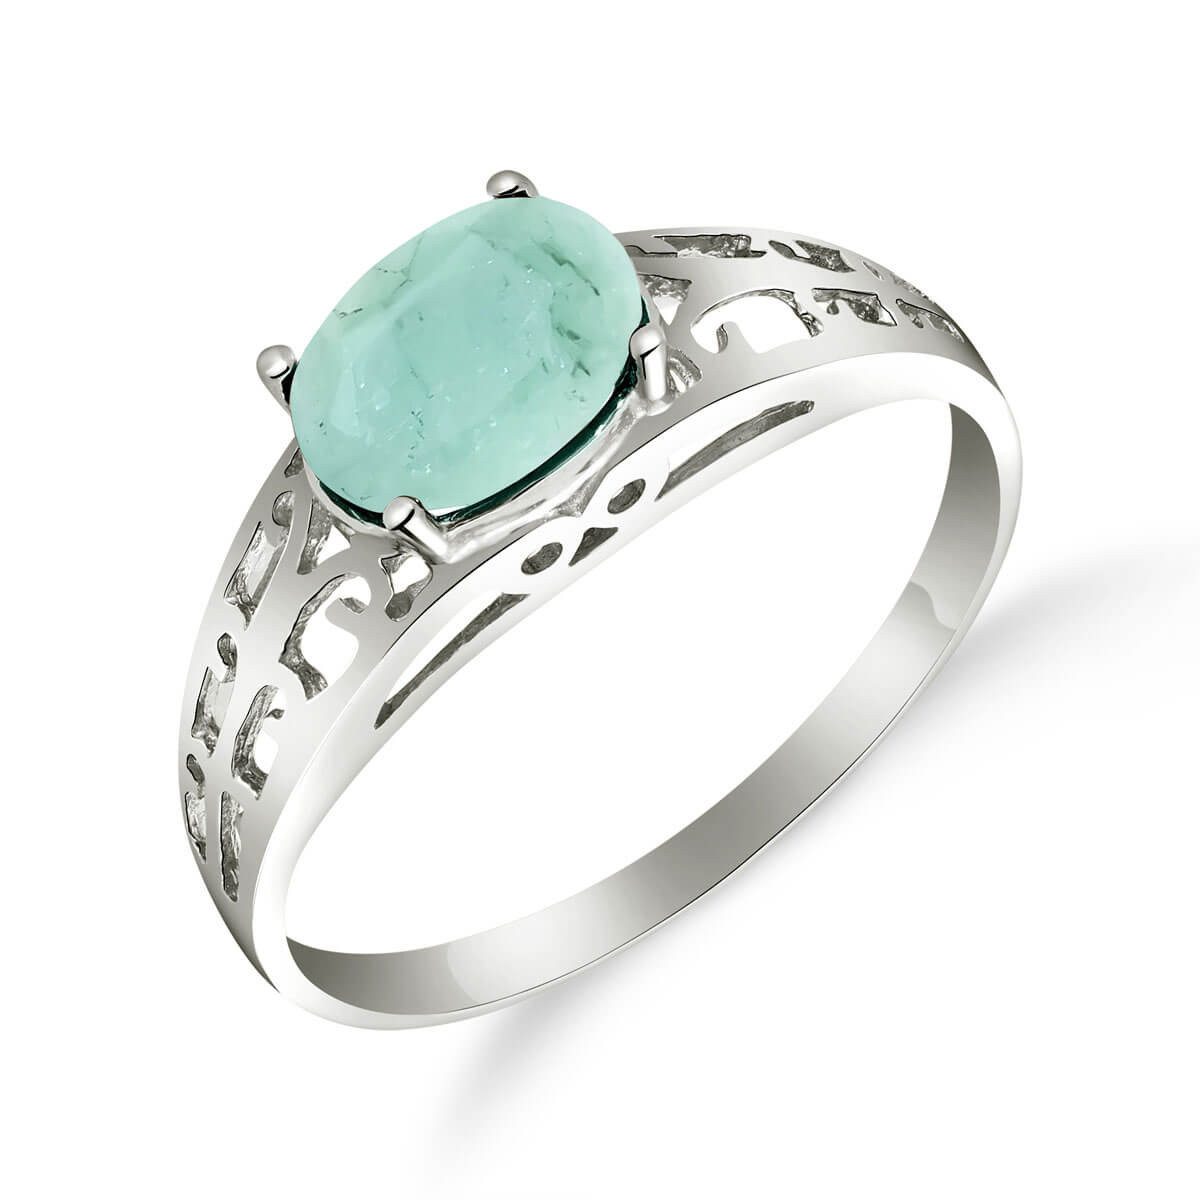 Emerald Catalan Filigree Ring 1.15 ct in Sterling Silver